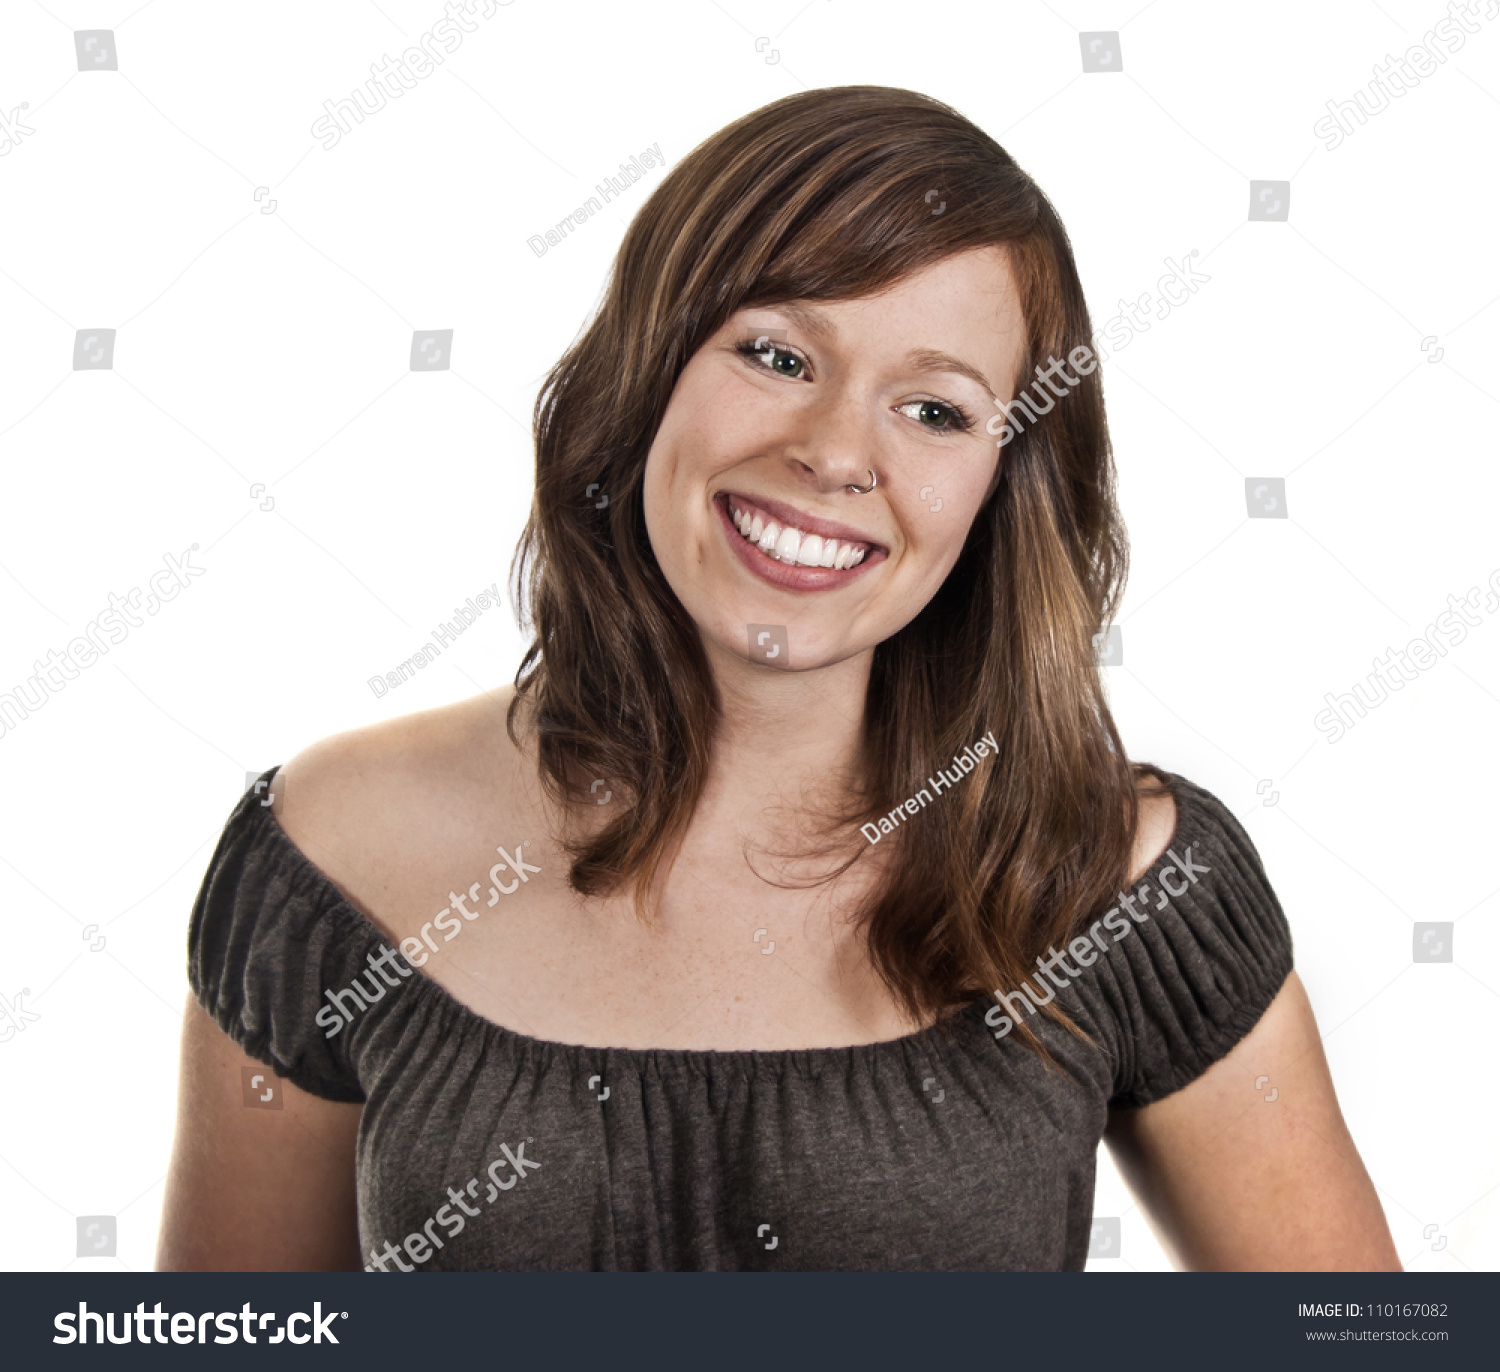 Laughing Lady Big Beautiful Smile Stock Photo (Royalty Free ...